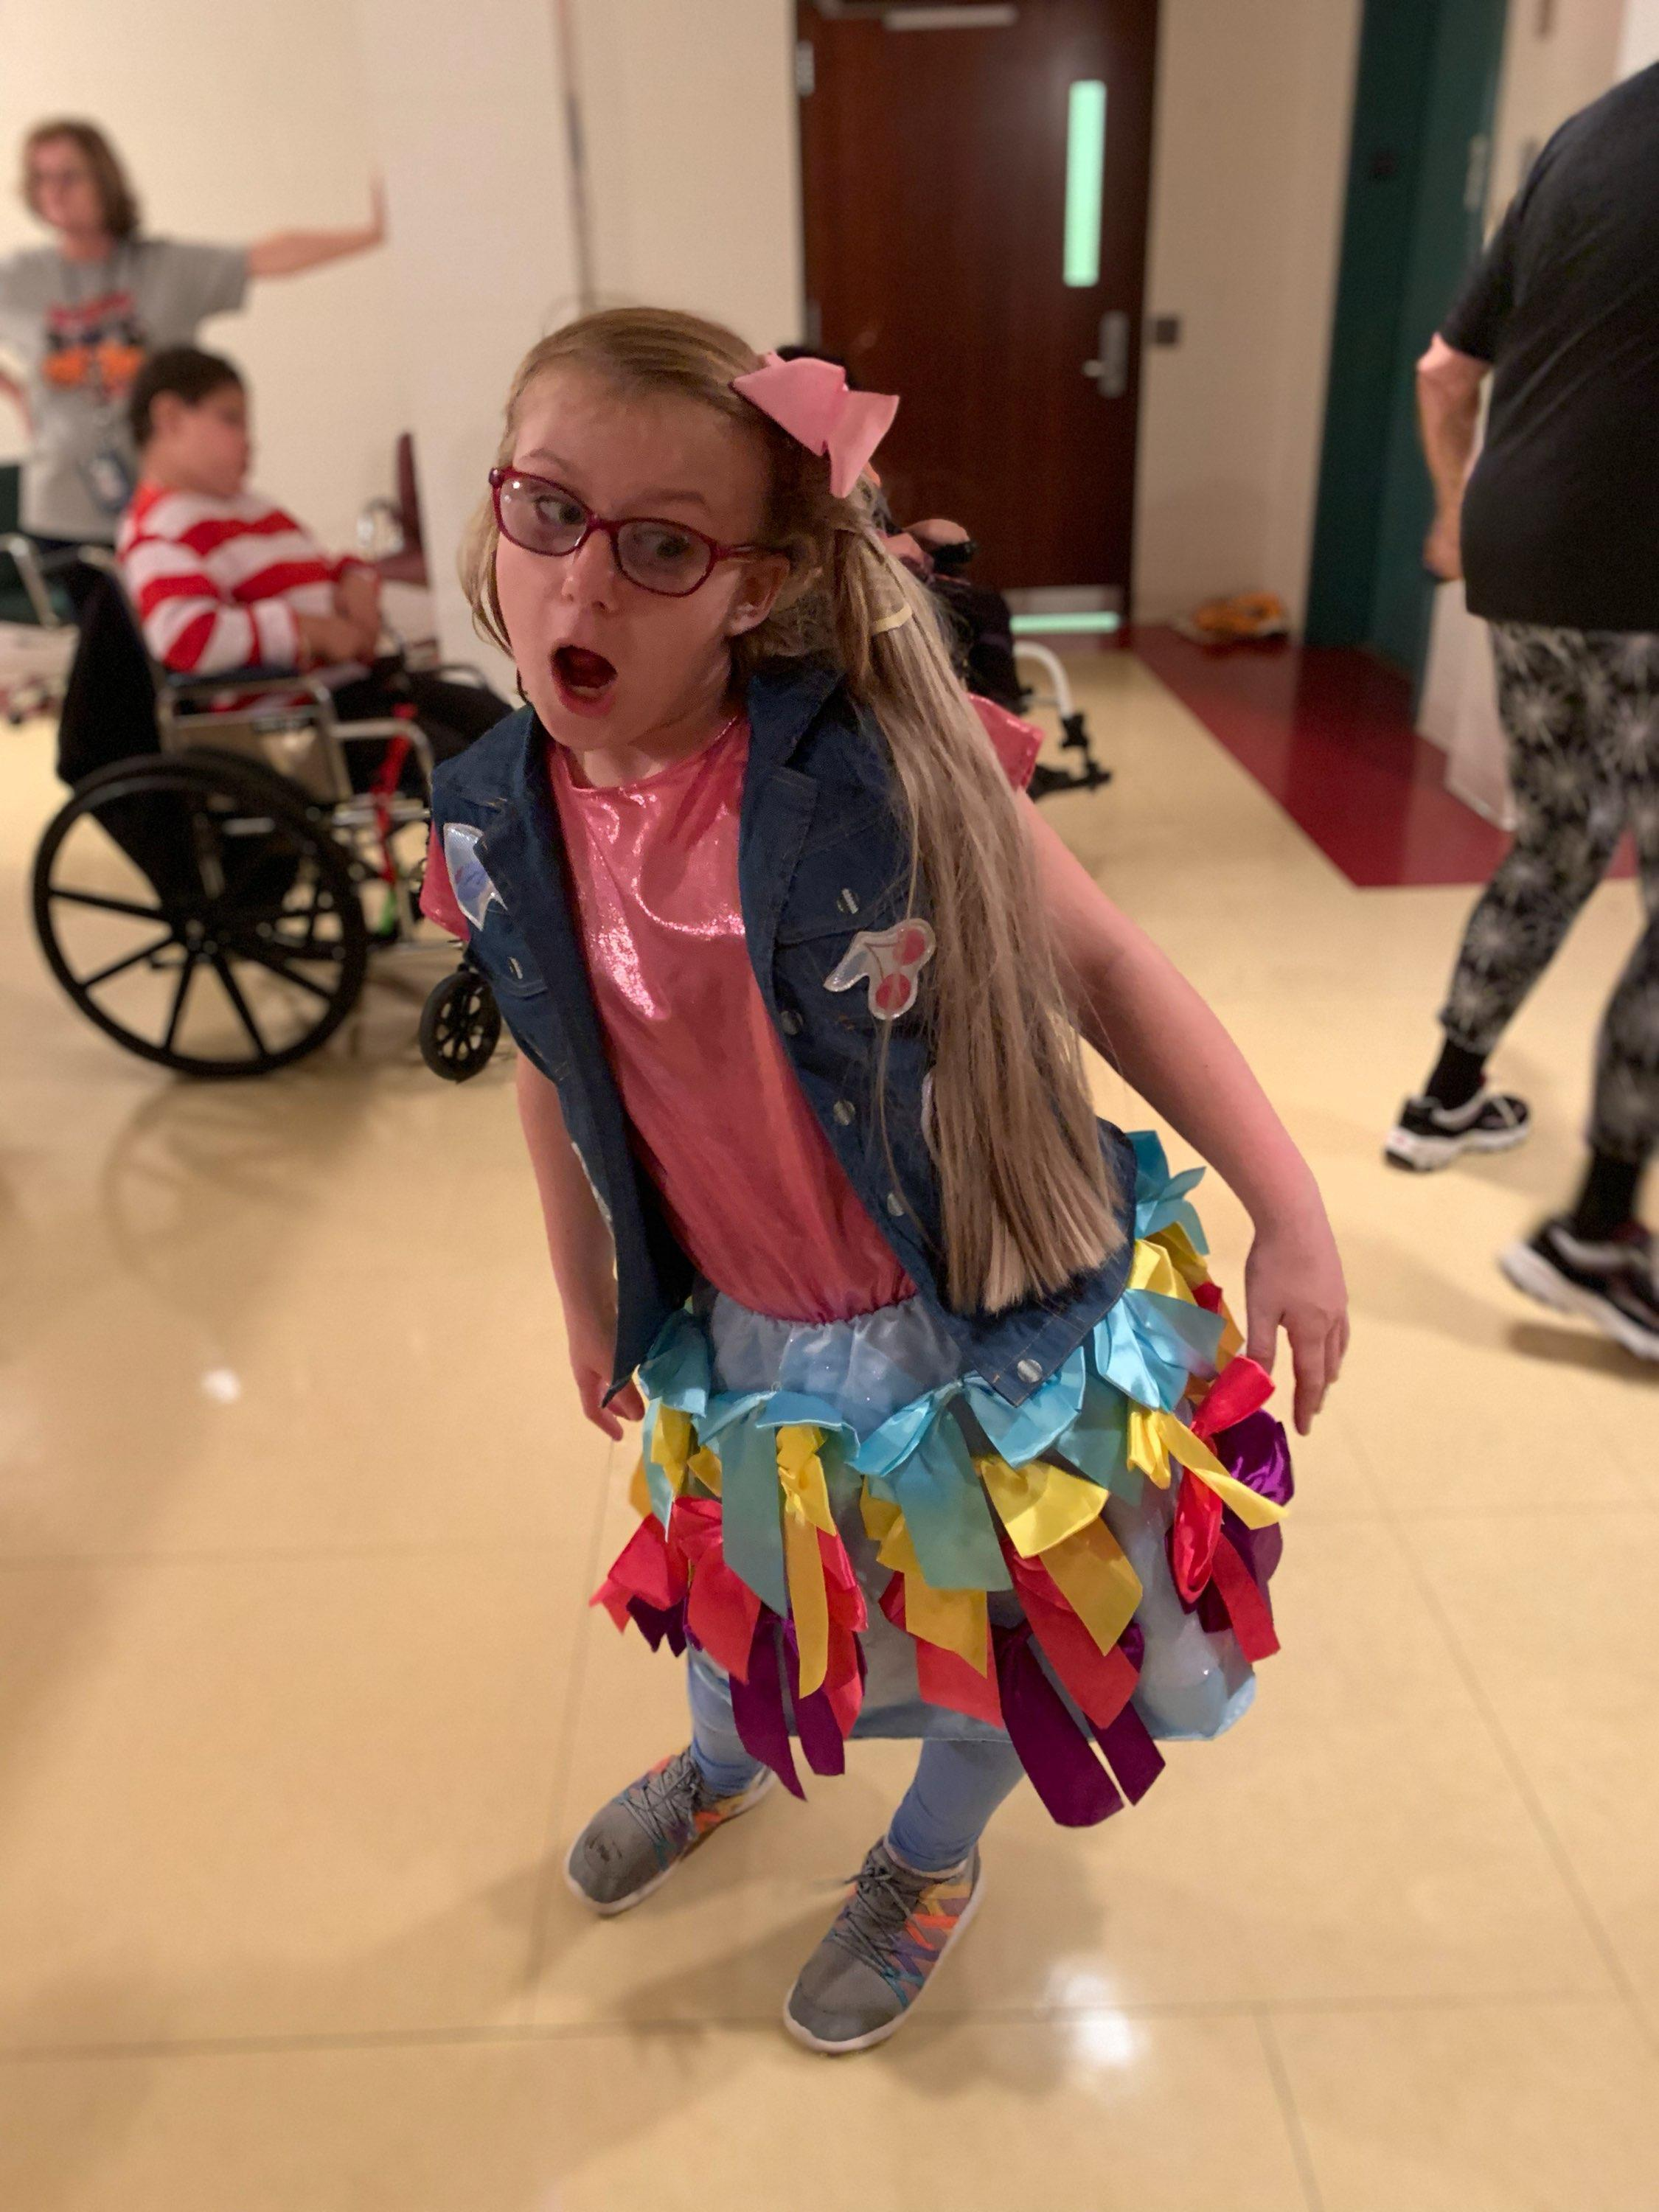 Student dressed up in a jean jacket and skirt with brightly colored ribbons